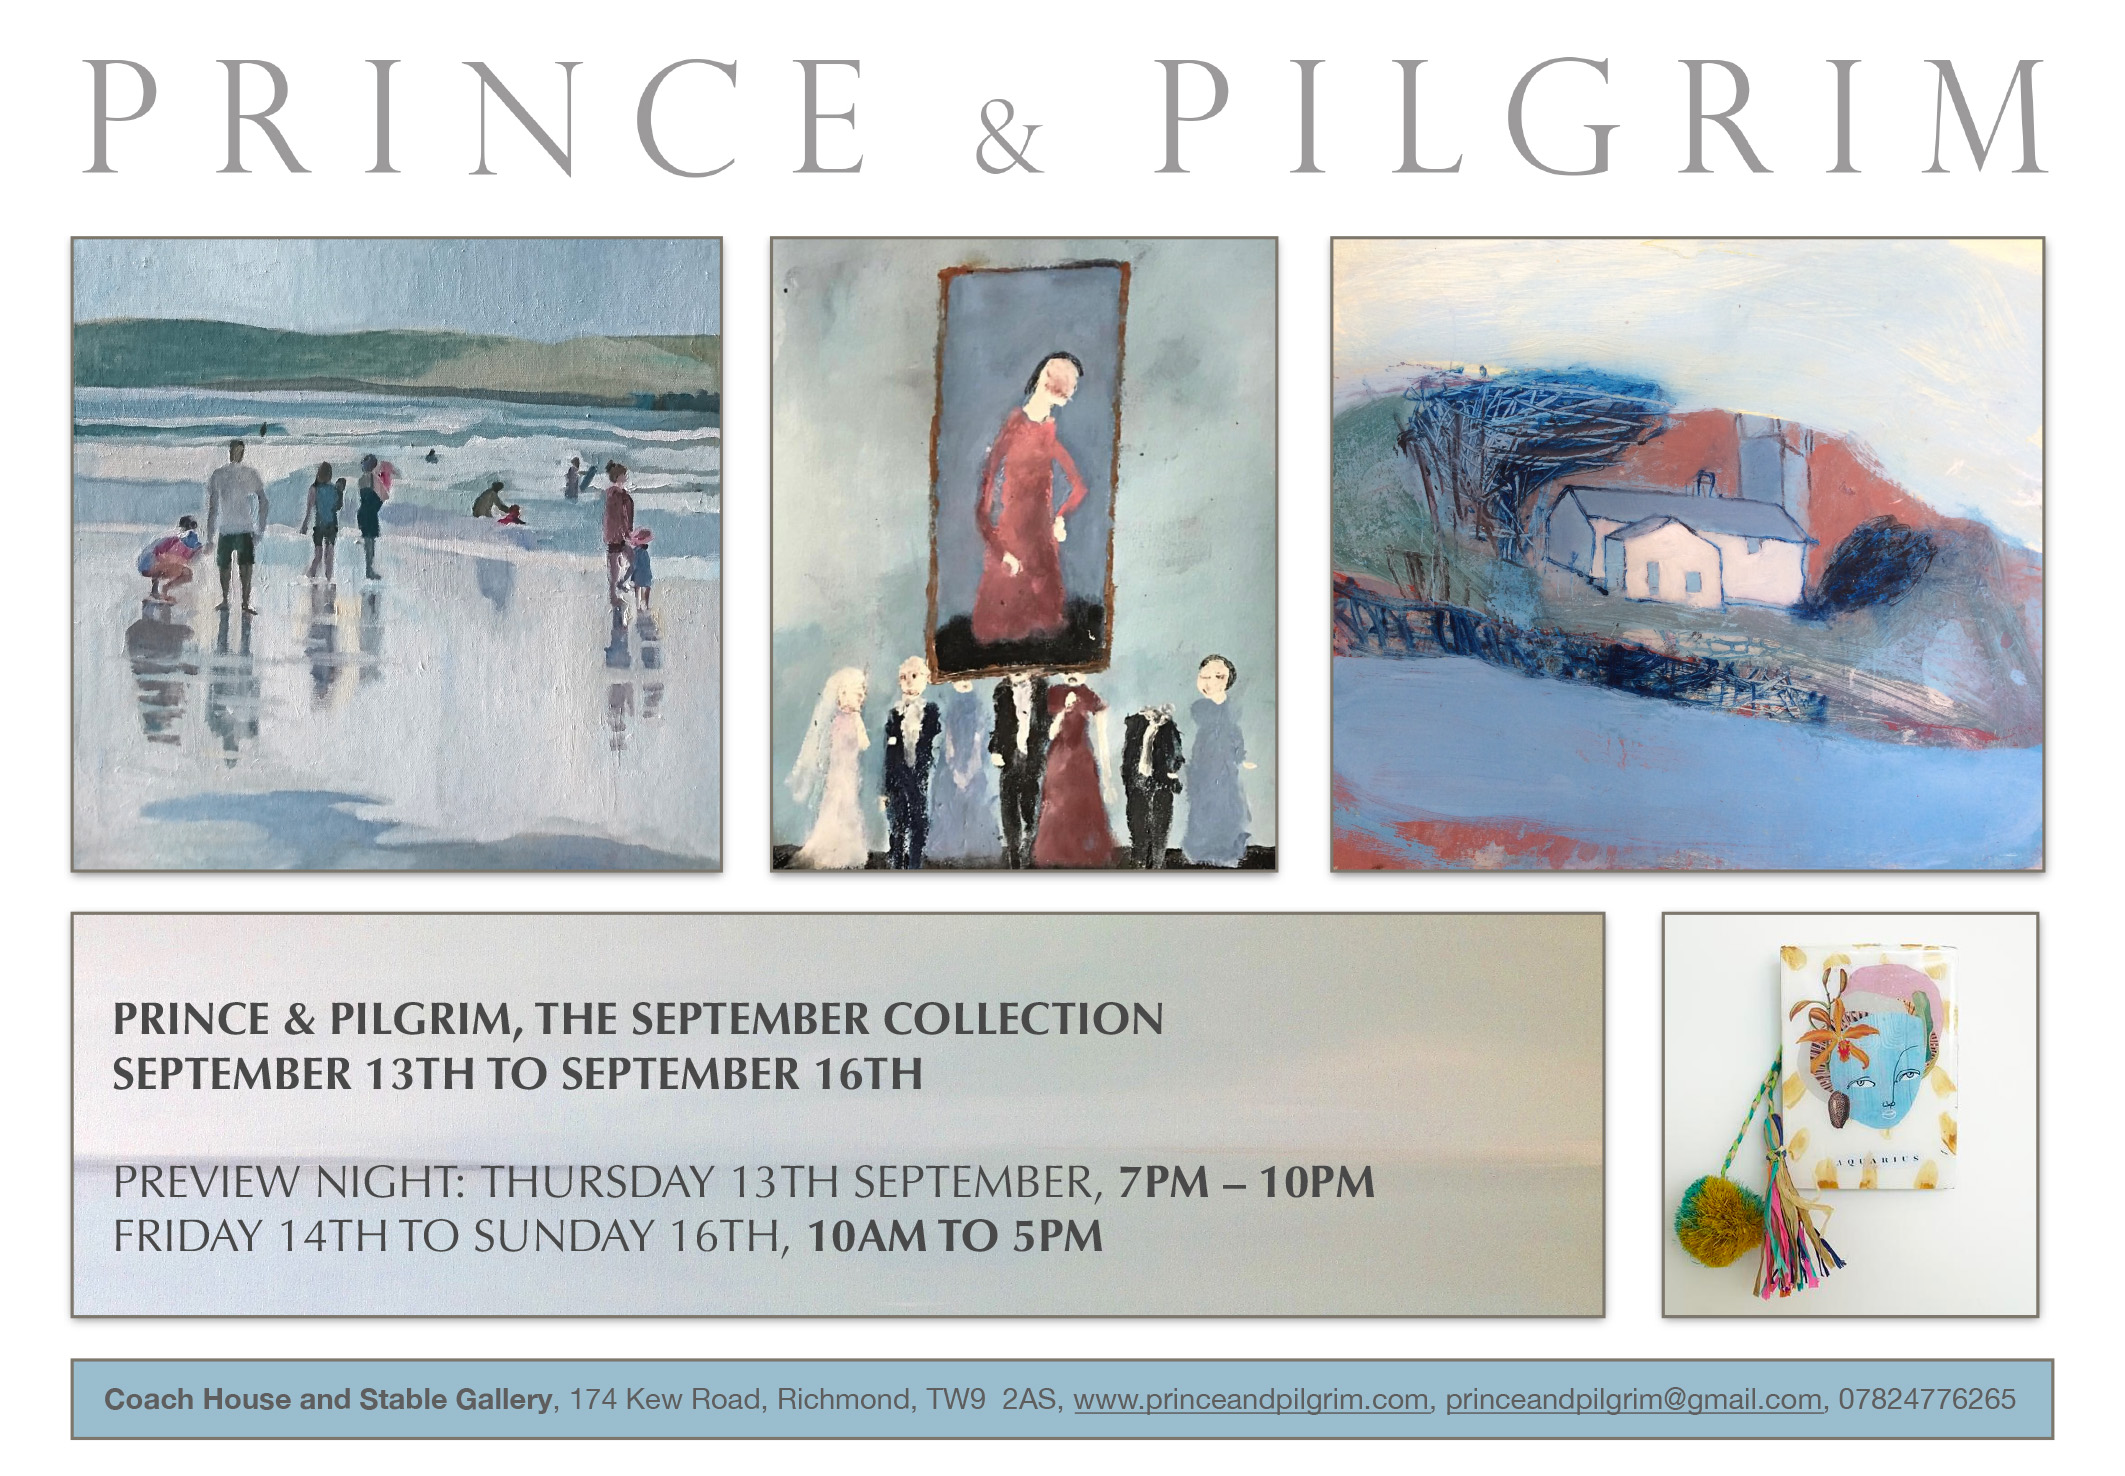 Prince & Pilgrim's September Collection - Save the Date!.jpg